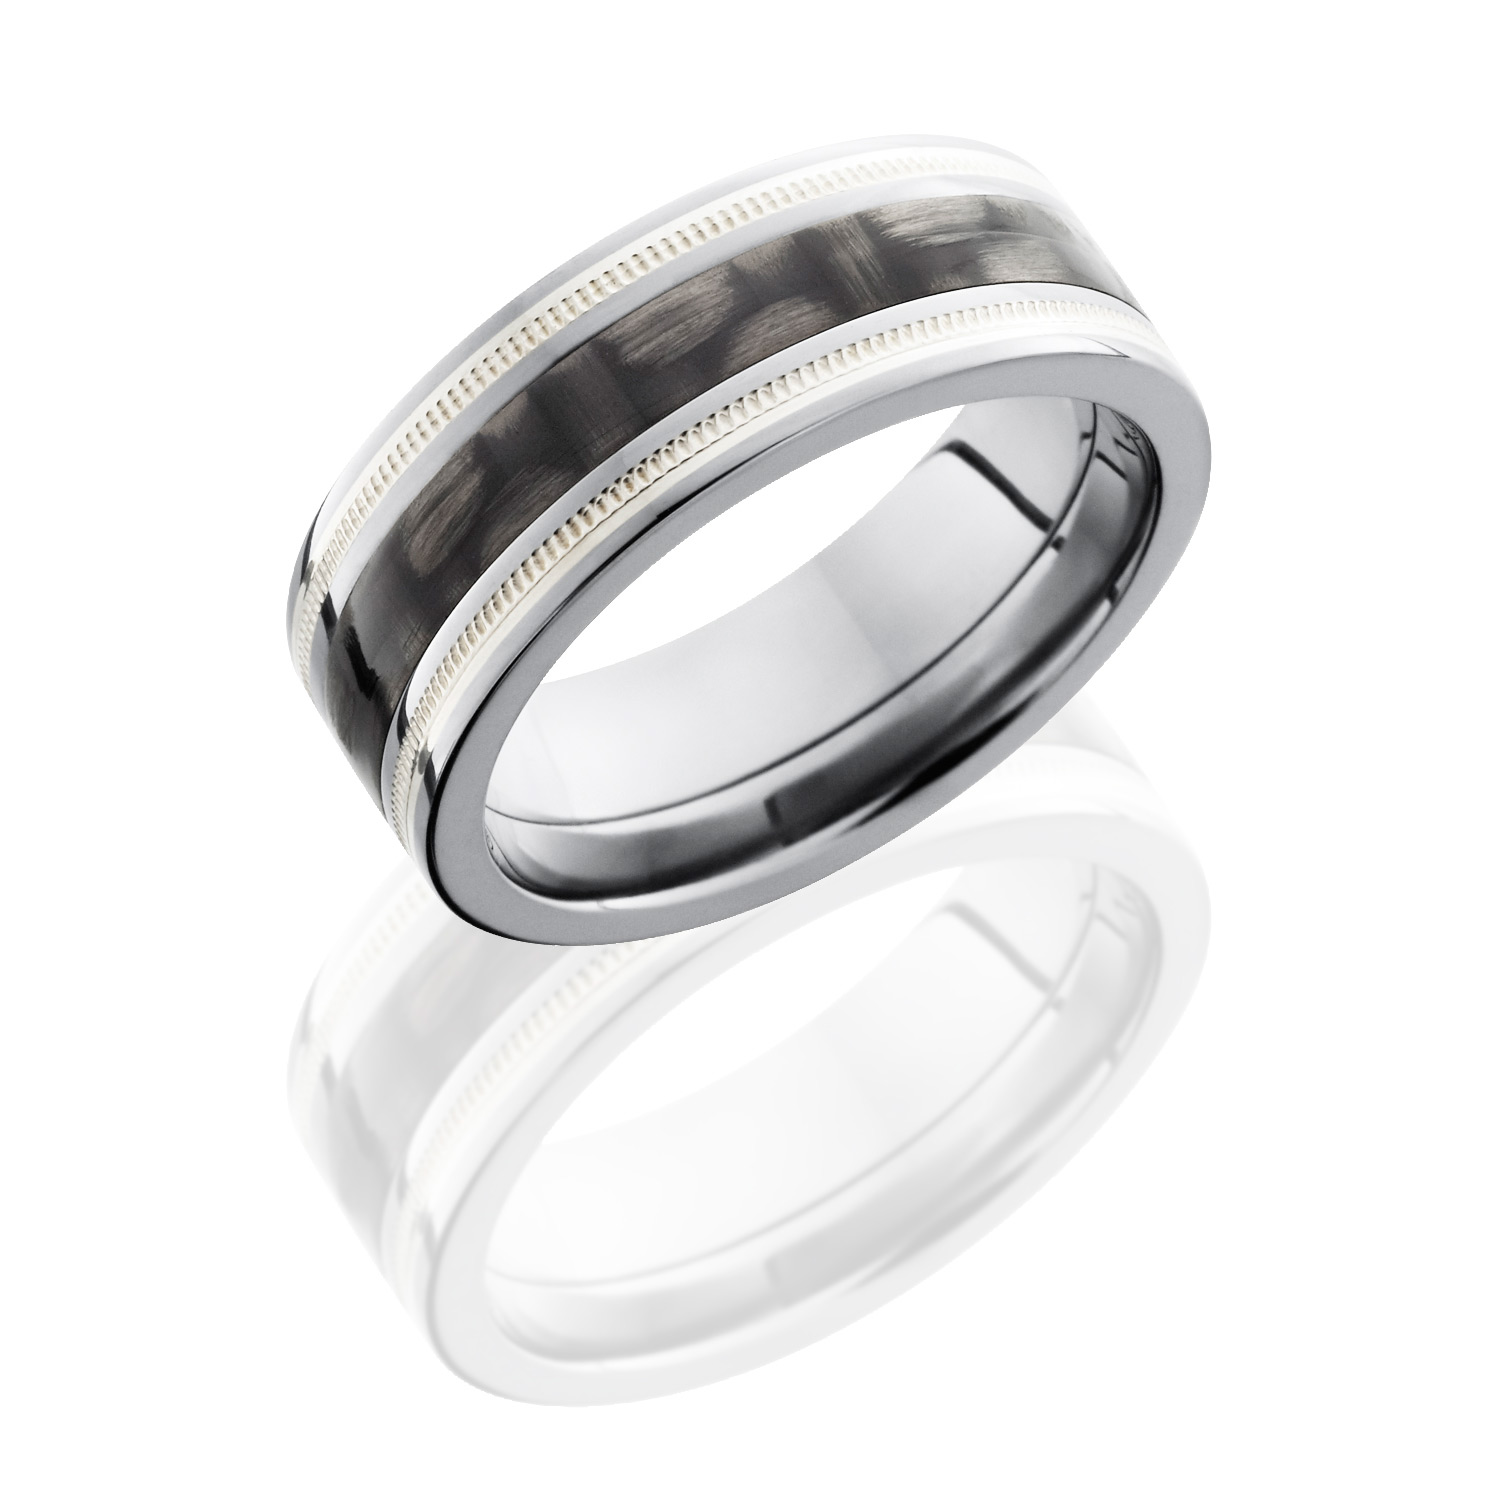 lashbrook c8f1321 cfss2umil polish titanium carbon fiber wedding ring or band - Carbon Fiber Wedding Rings